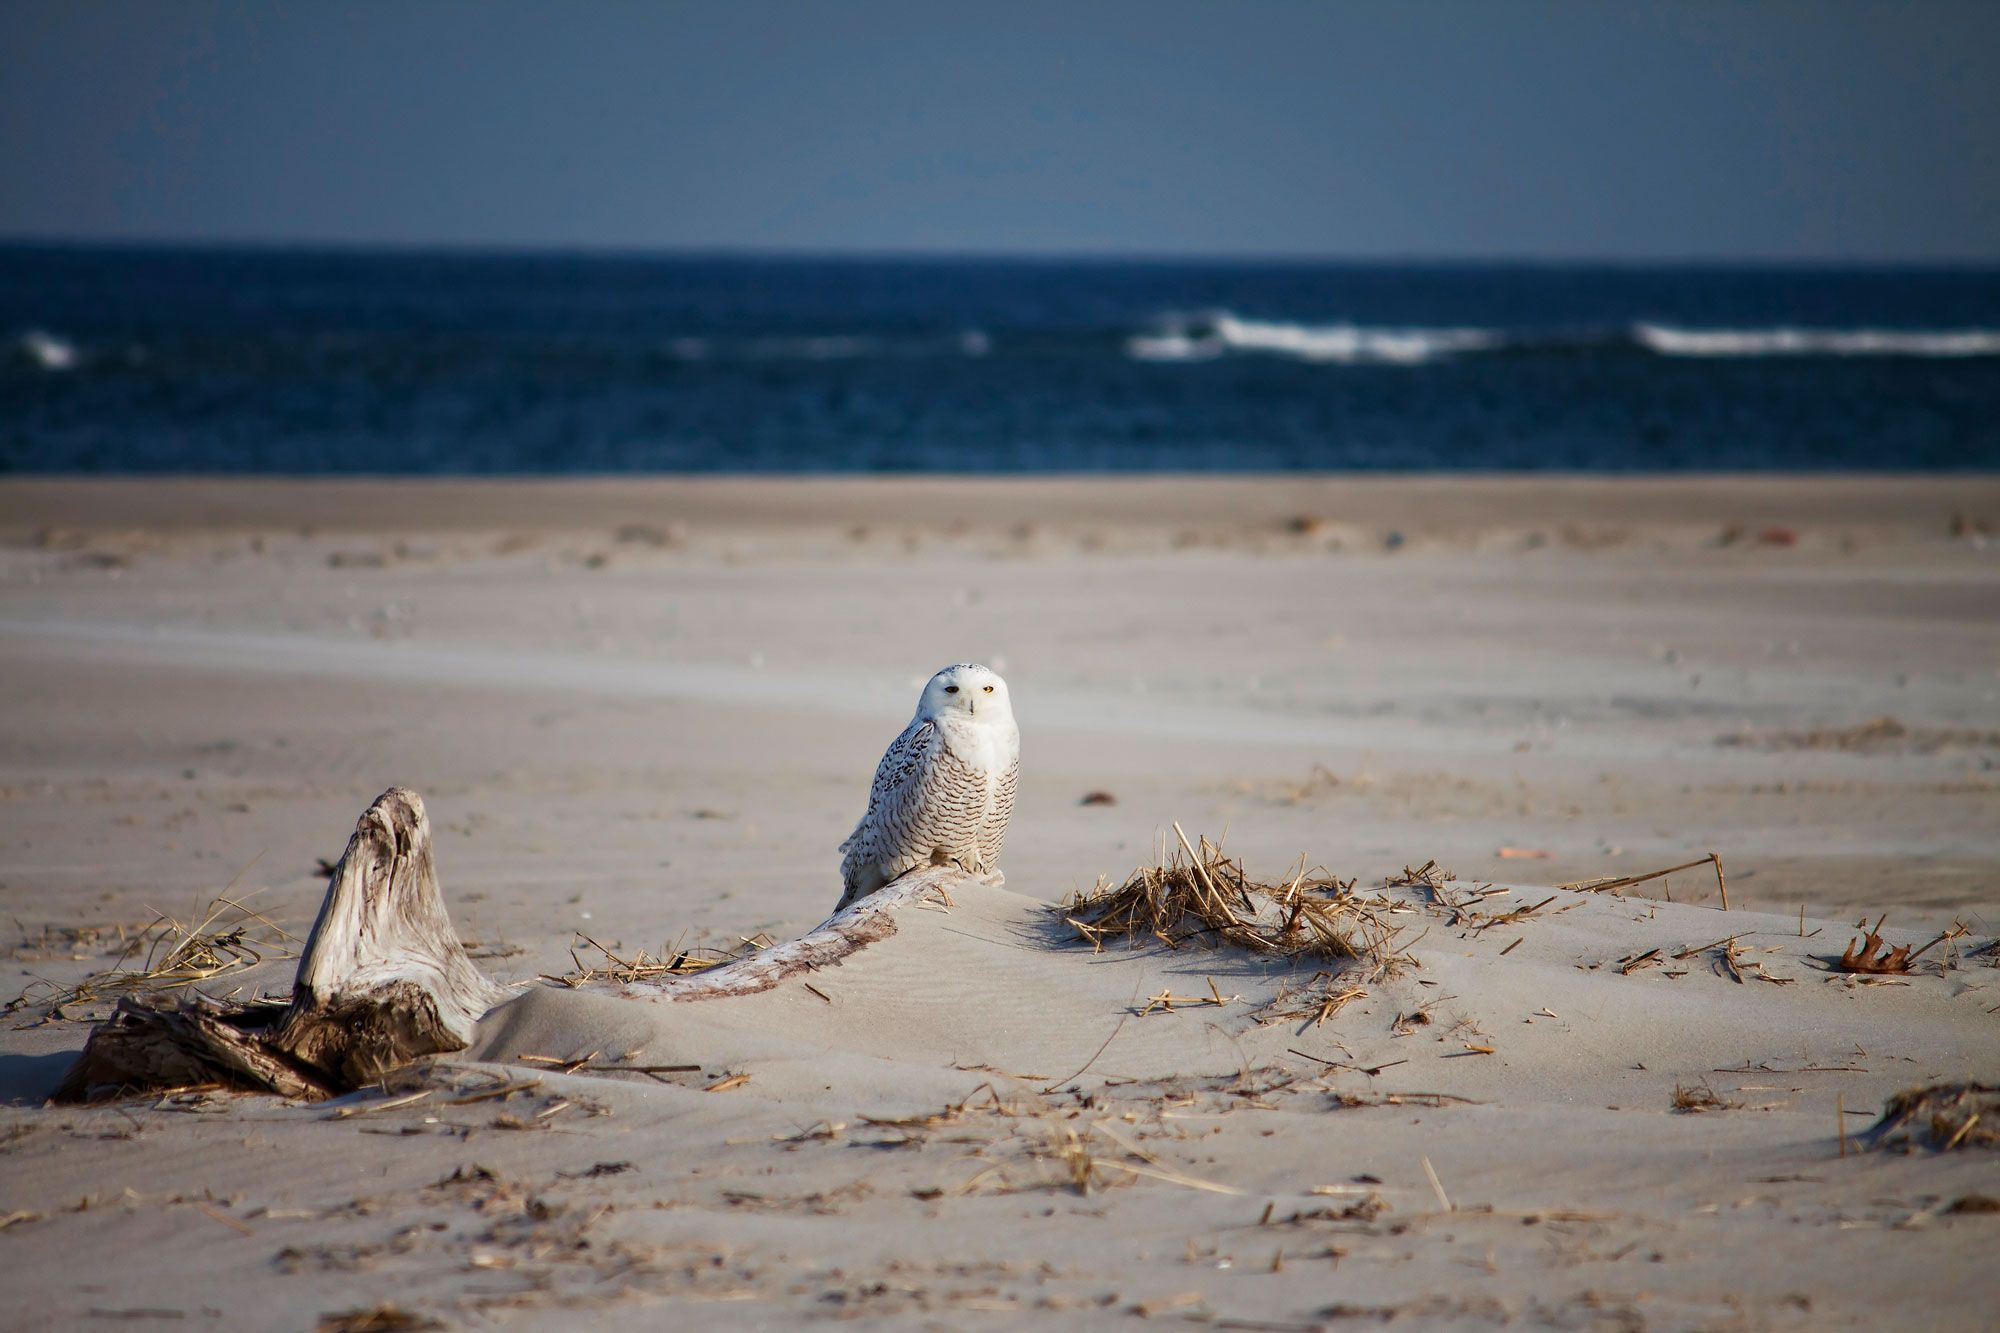 When the owl go to the beach...